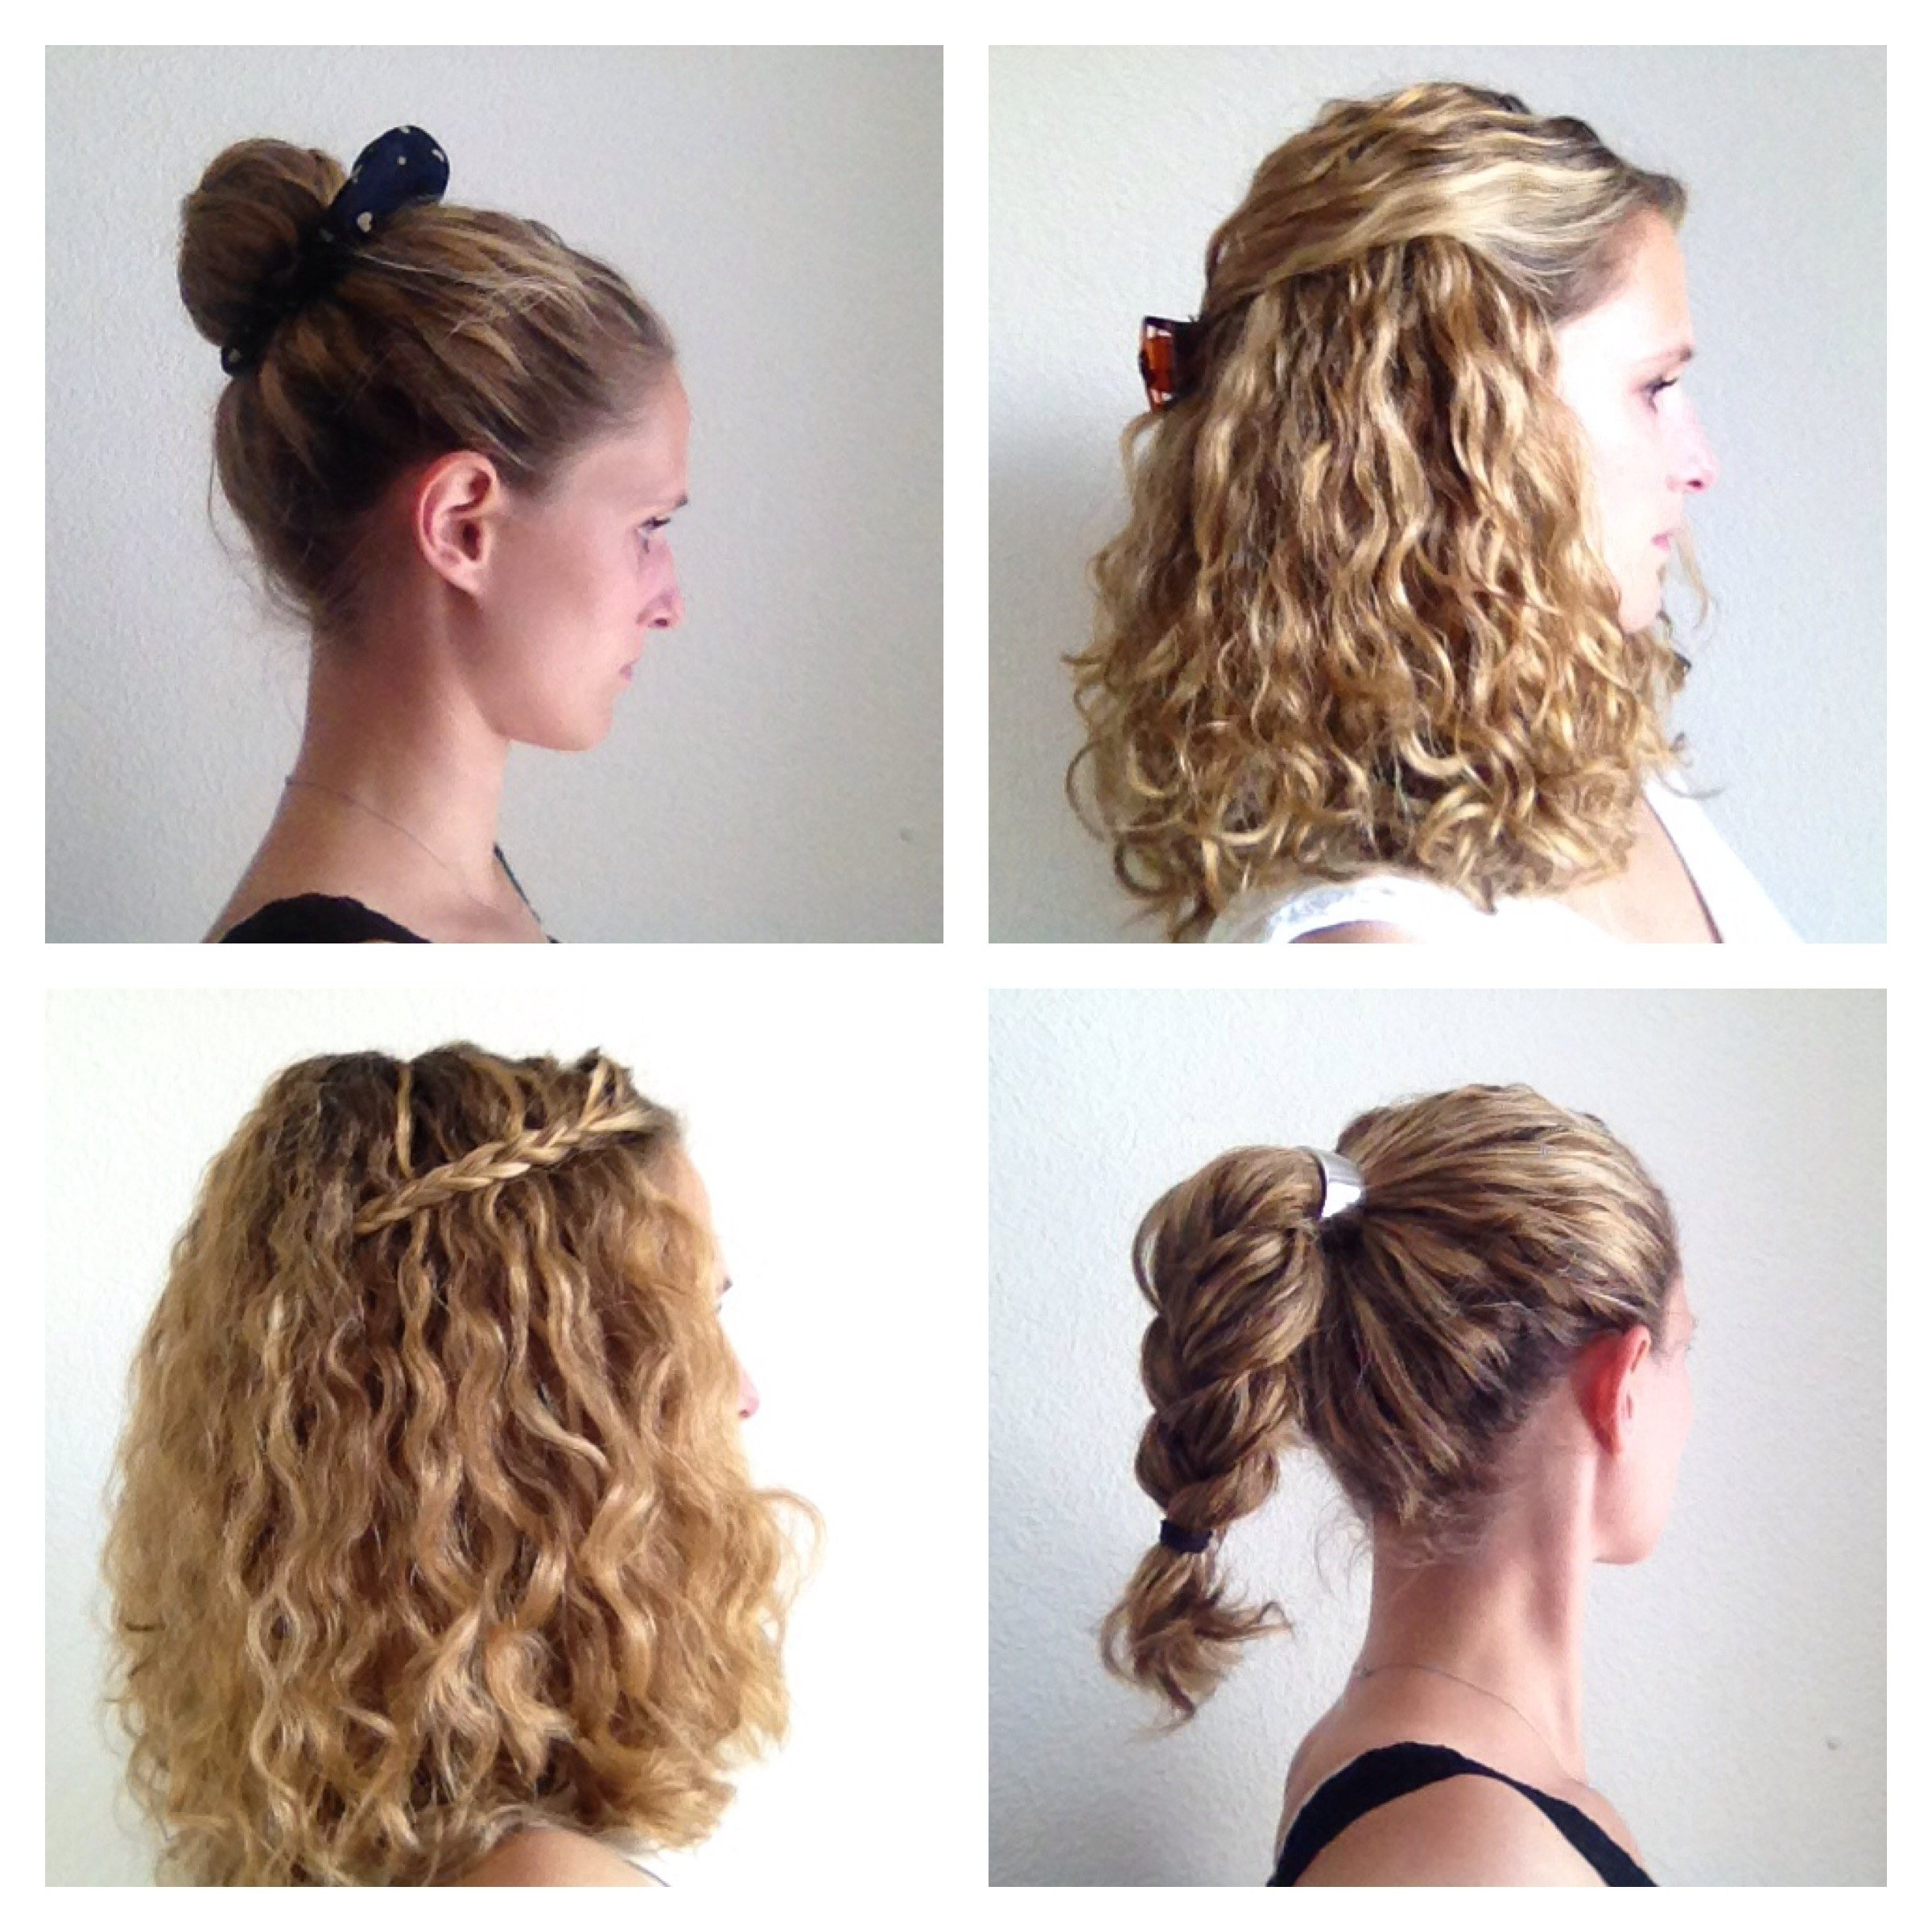 four styling ideas for curly hair - justcurly